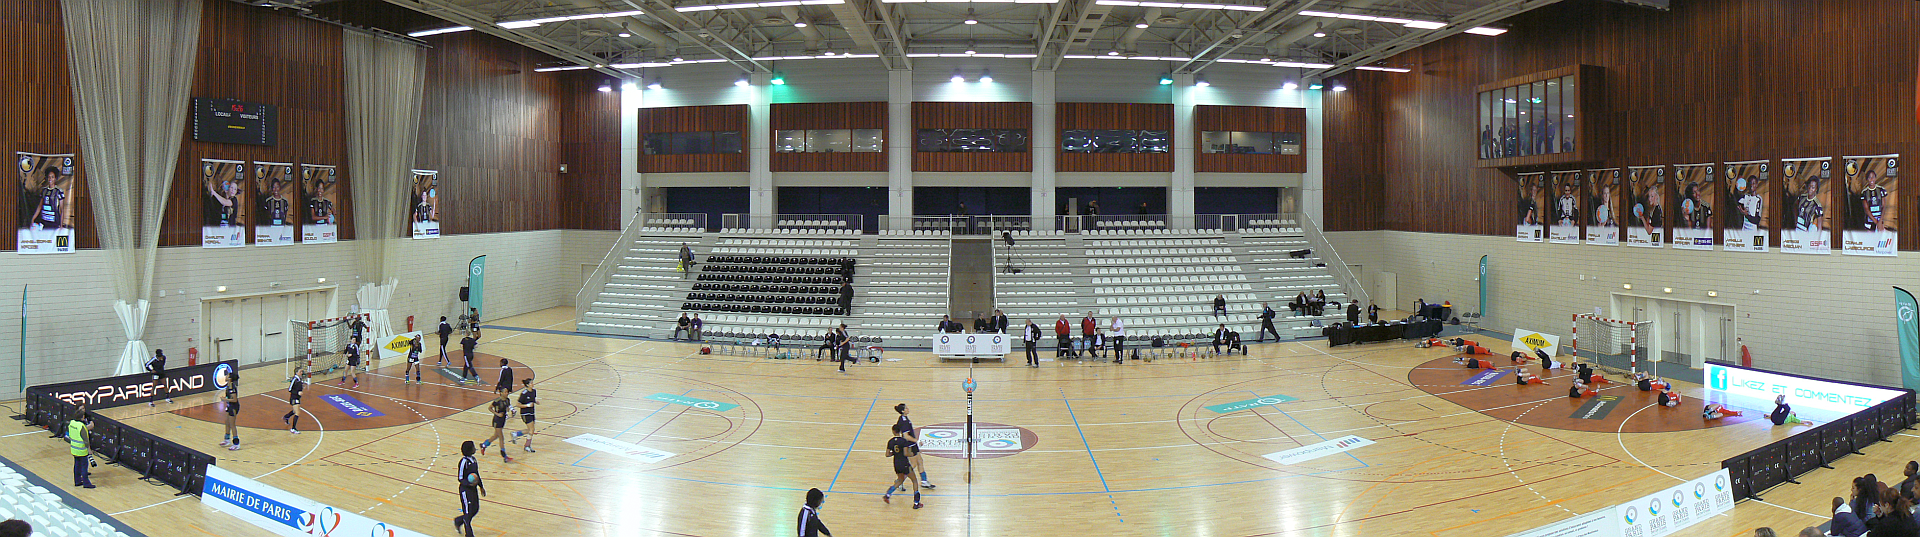 file palais des sports robert charpentier grande salle 02 png wikimedia commons